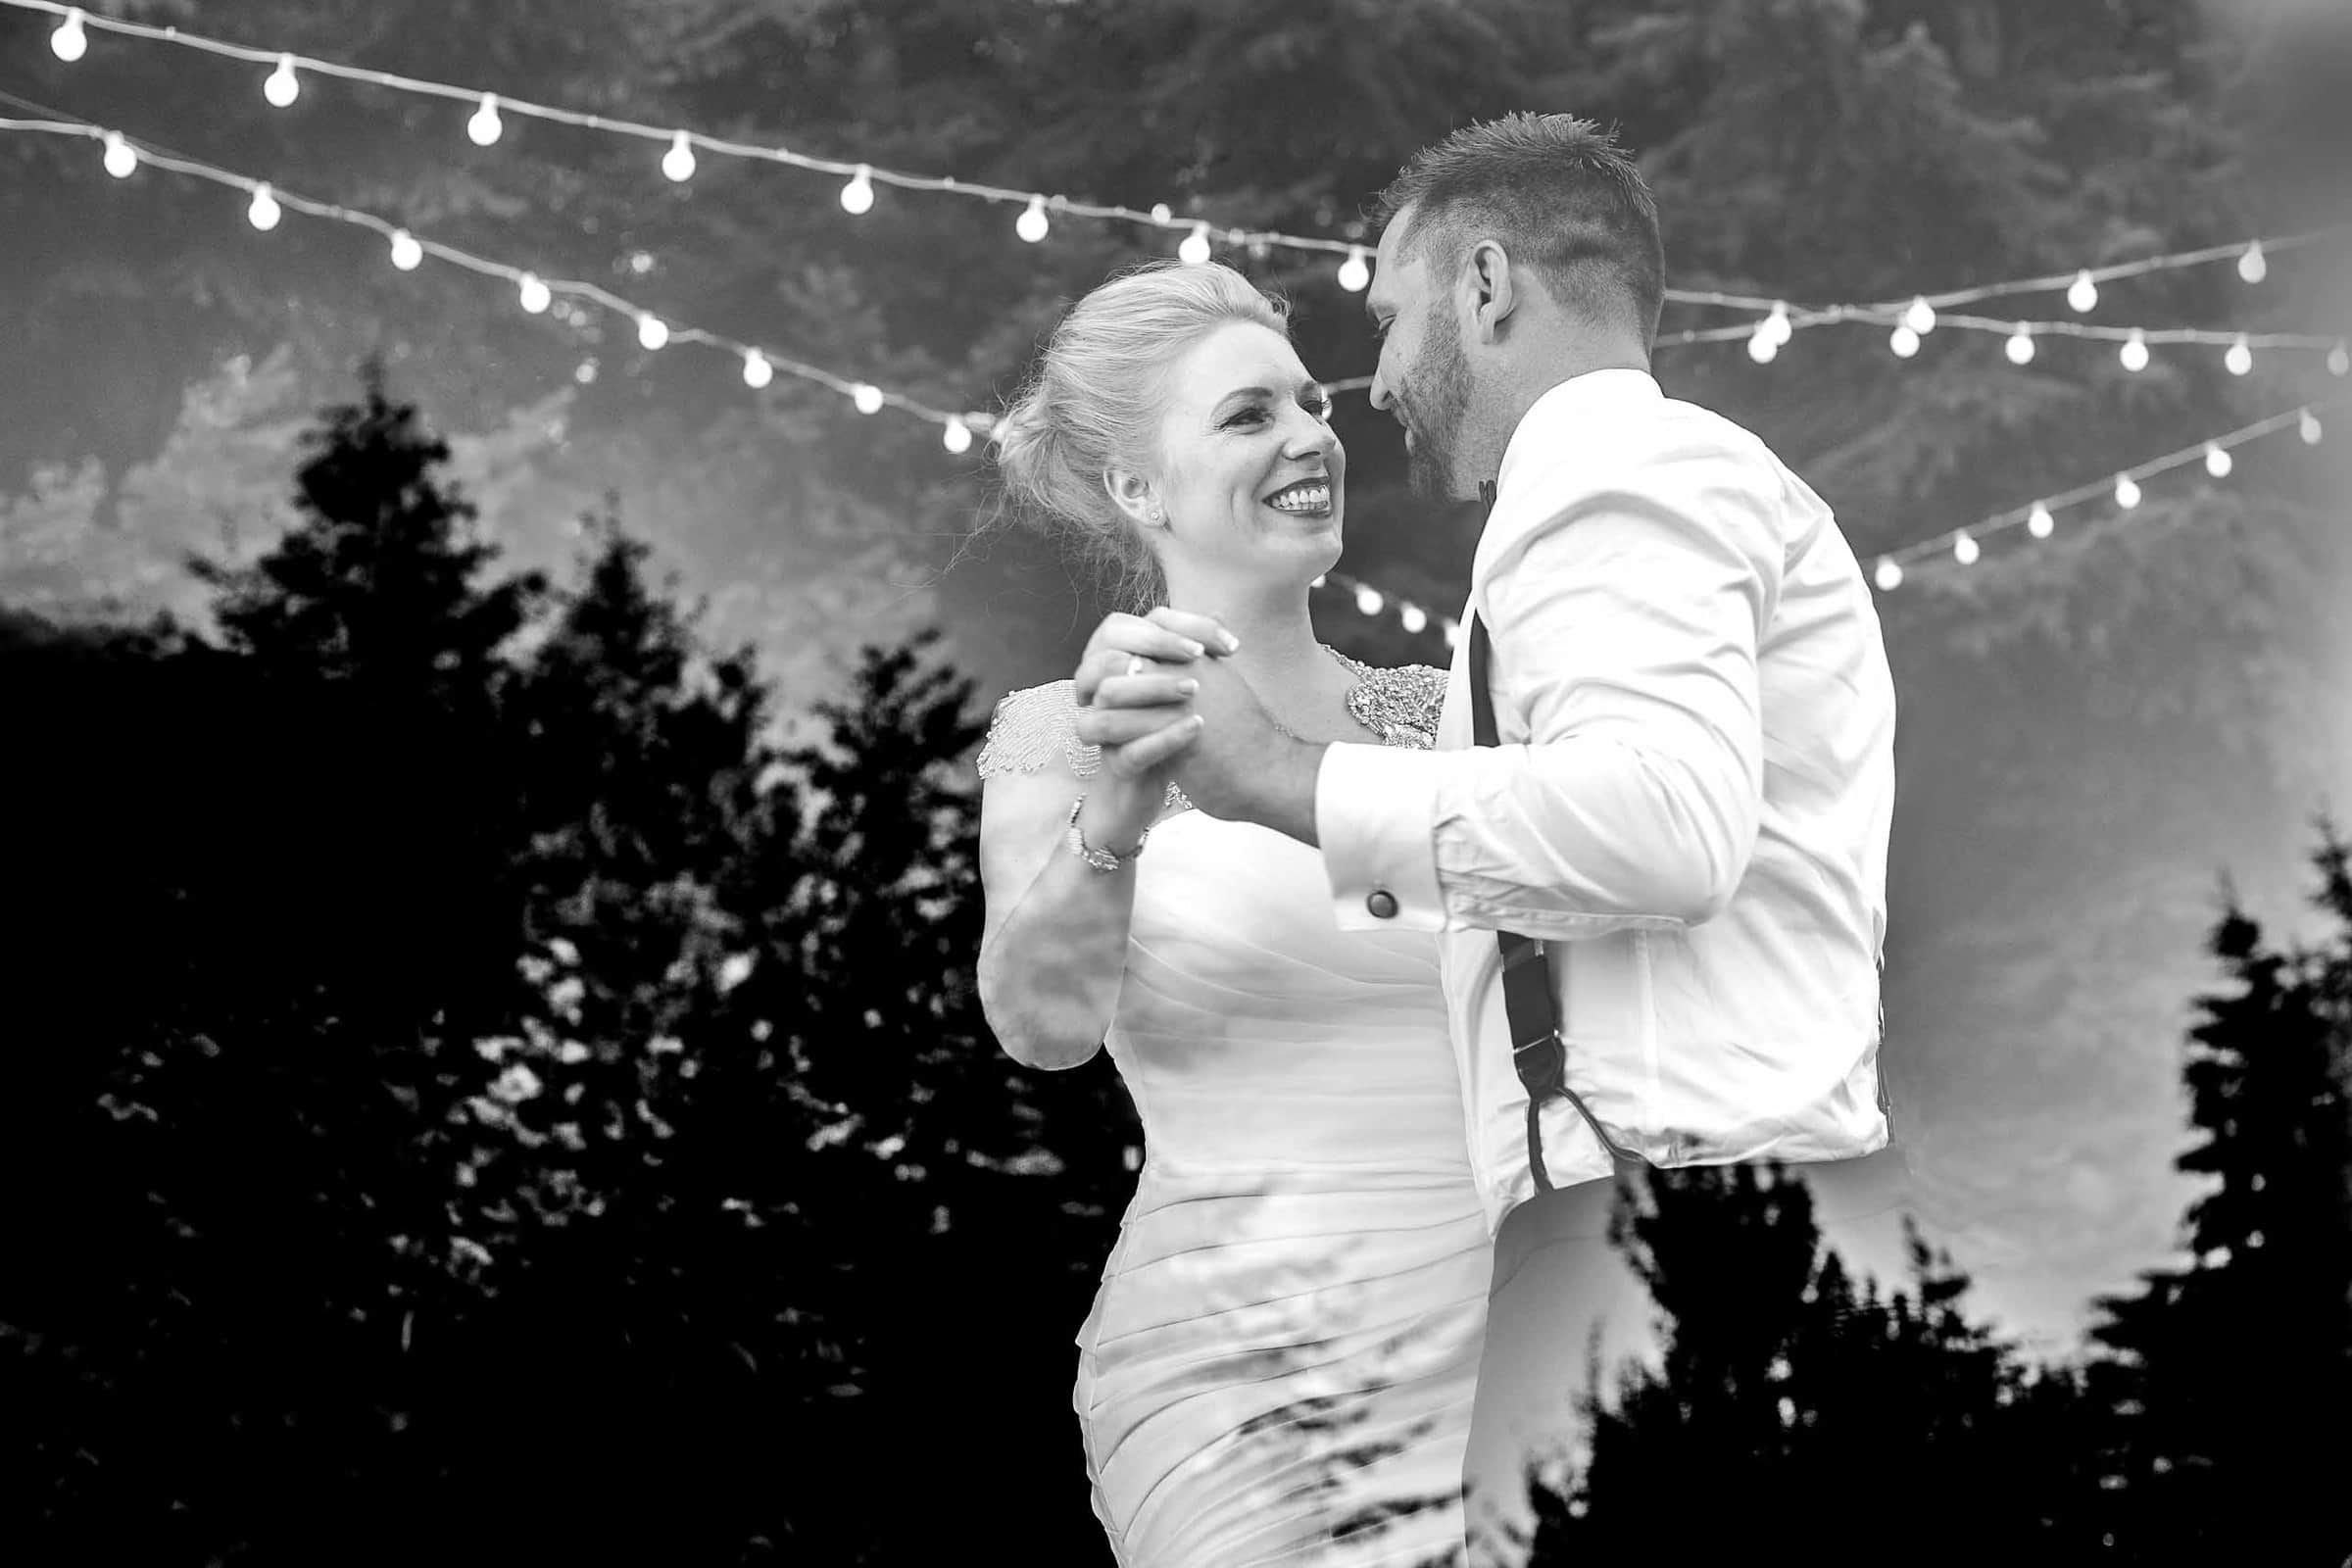 Gorgeous bride and groom creative first dance photo at Gorge Crest wedding venue.